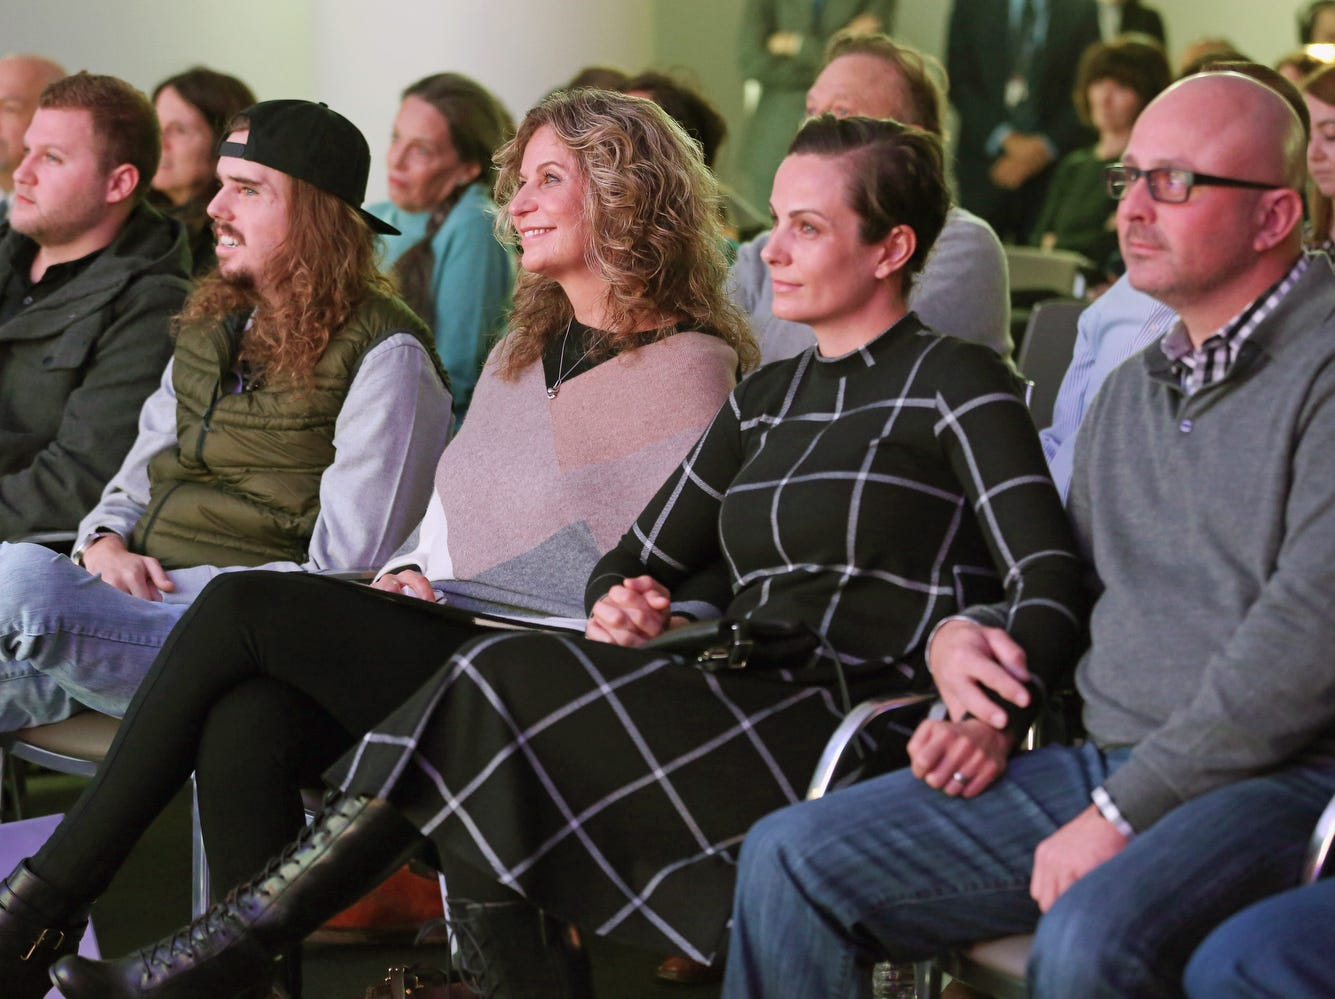 Cameron Underwood, 2nd left, his mother Bev Bailey-Potter, and family attend the 2018 NYU Langone Face Transplant Announcement.